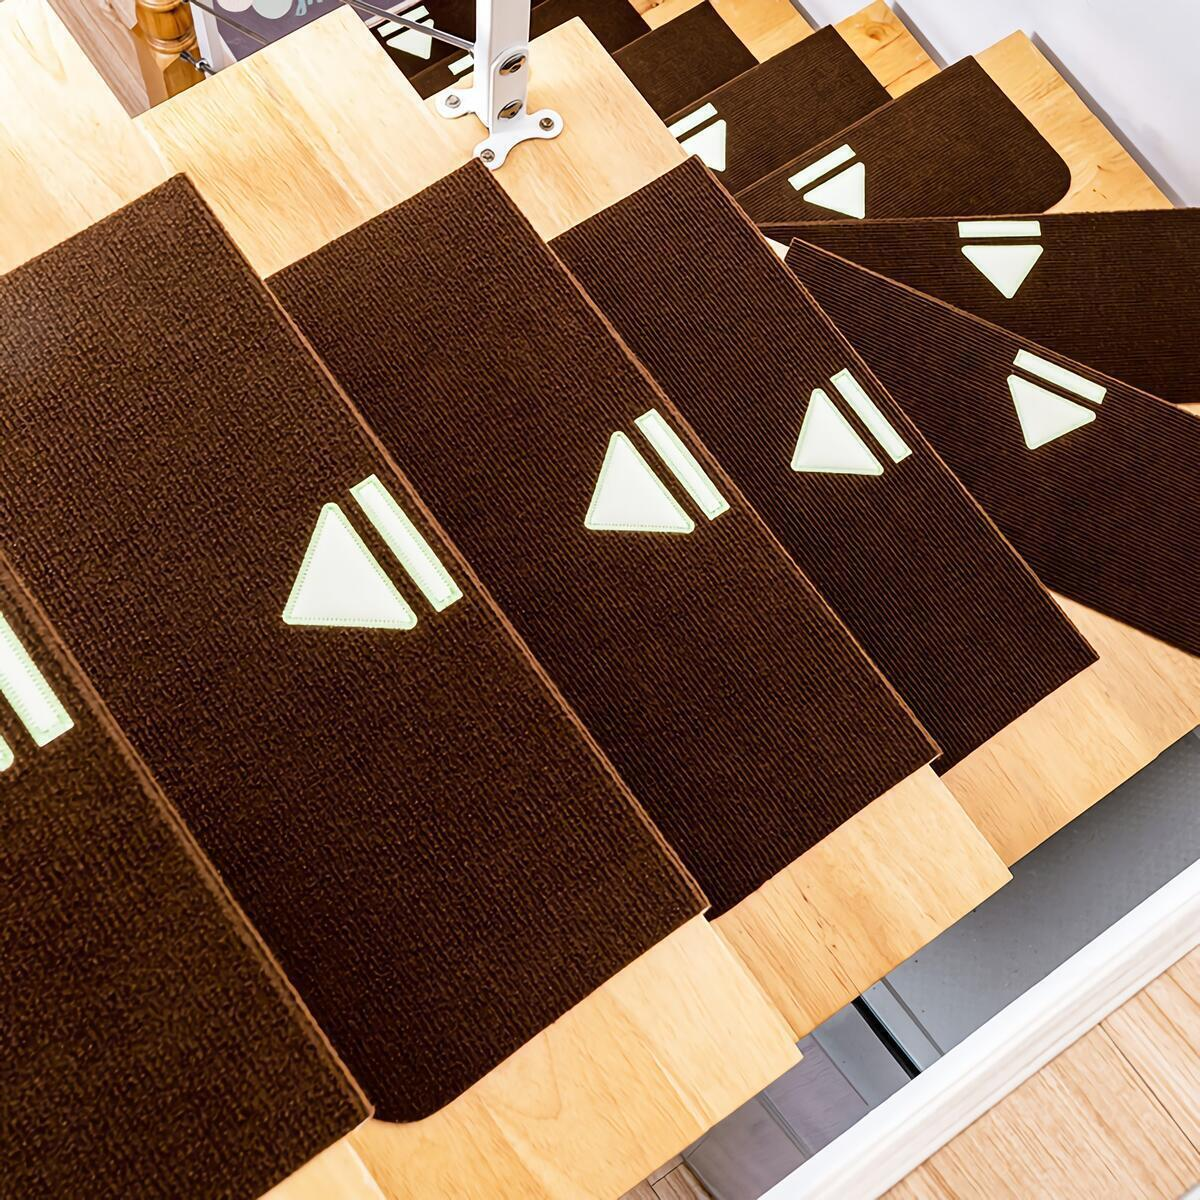 Stair Treads Carpet Mat Set of 5|Non-Slip Luminous Soft Self-Adhesive Soundproof Waterproof|ALL THE VARIATION ARE APPLIED TO REBATE.